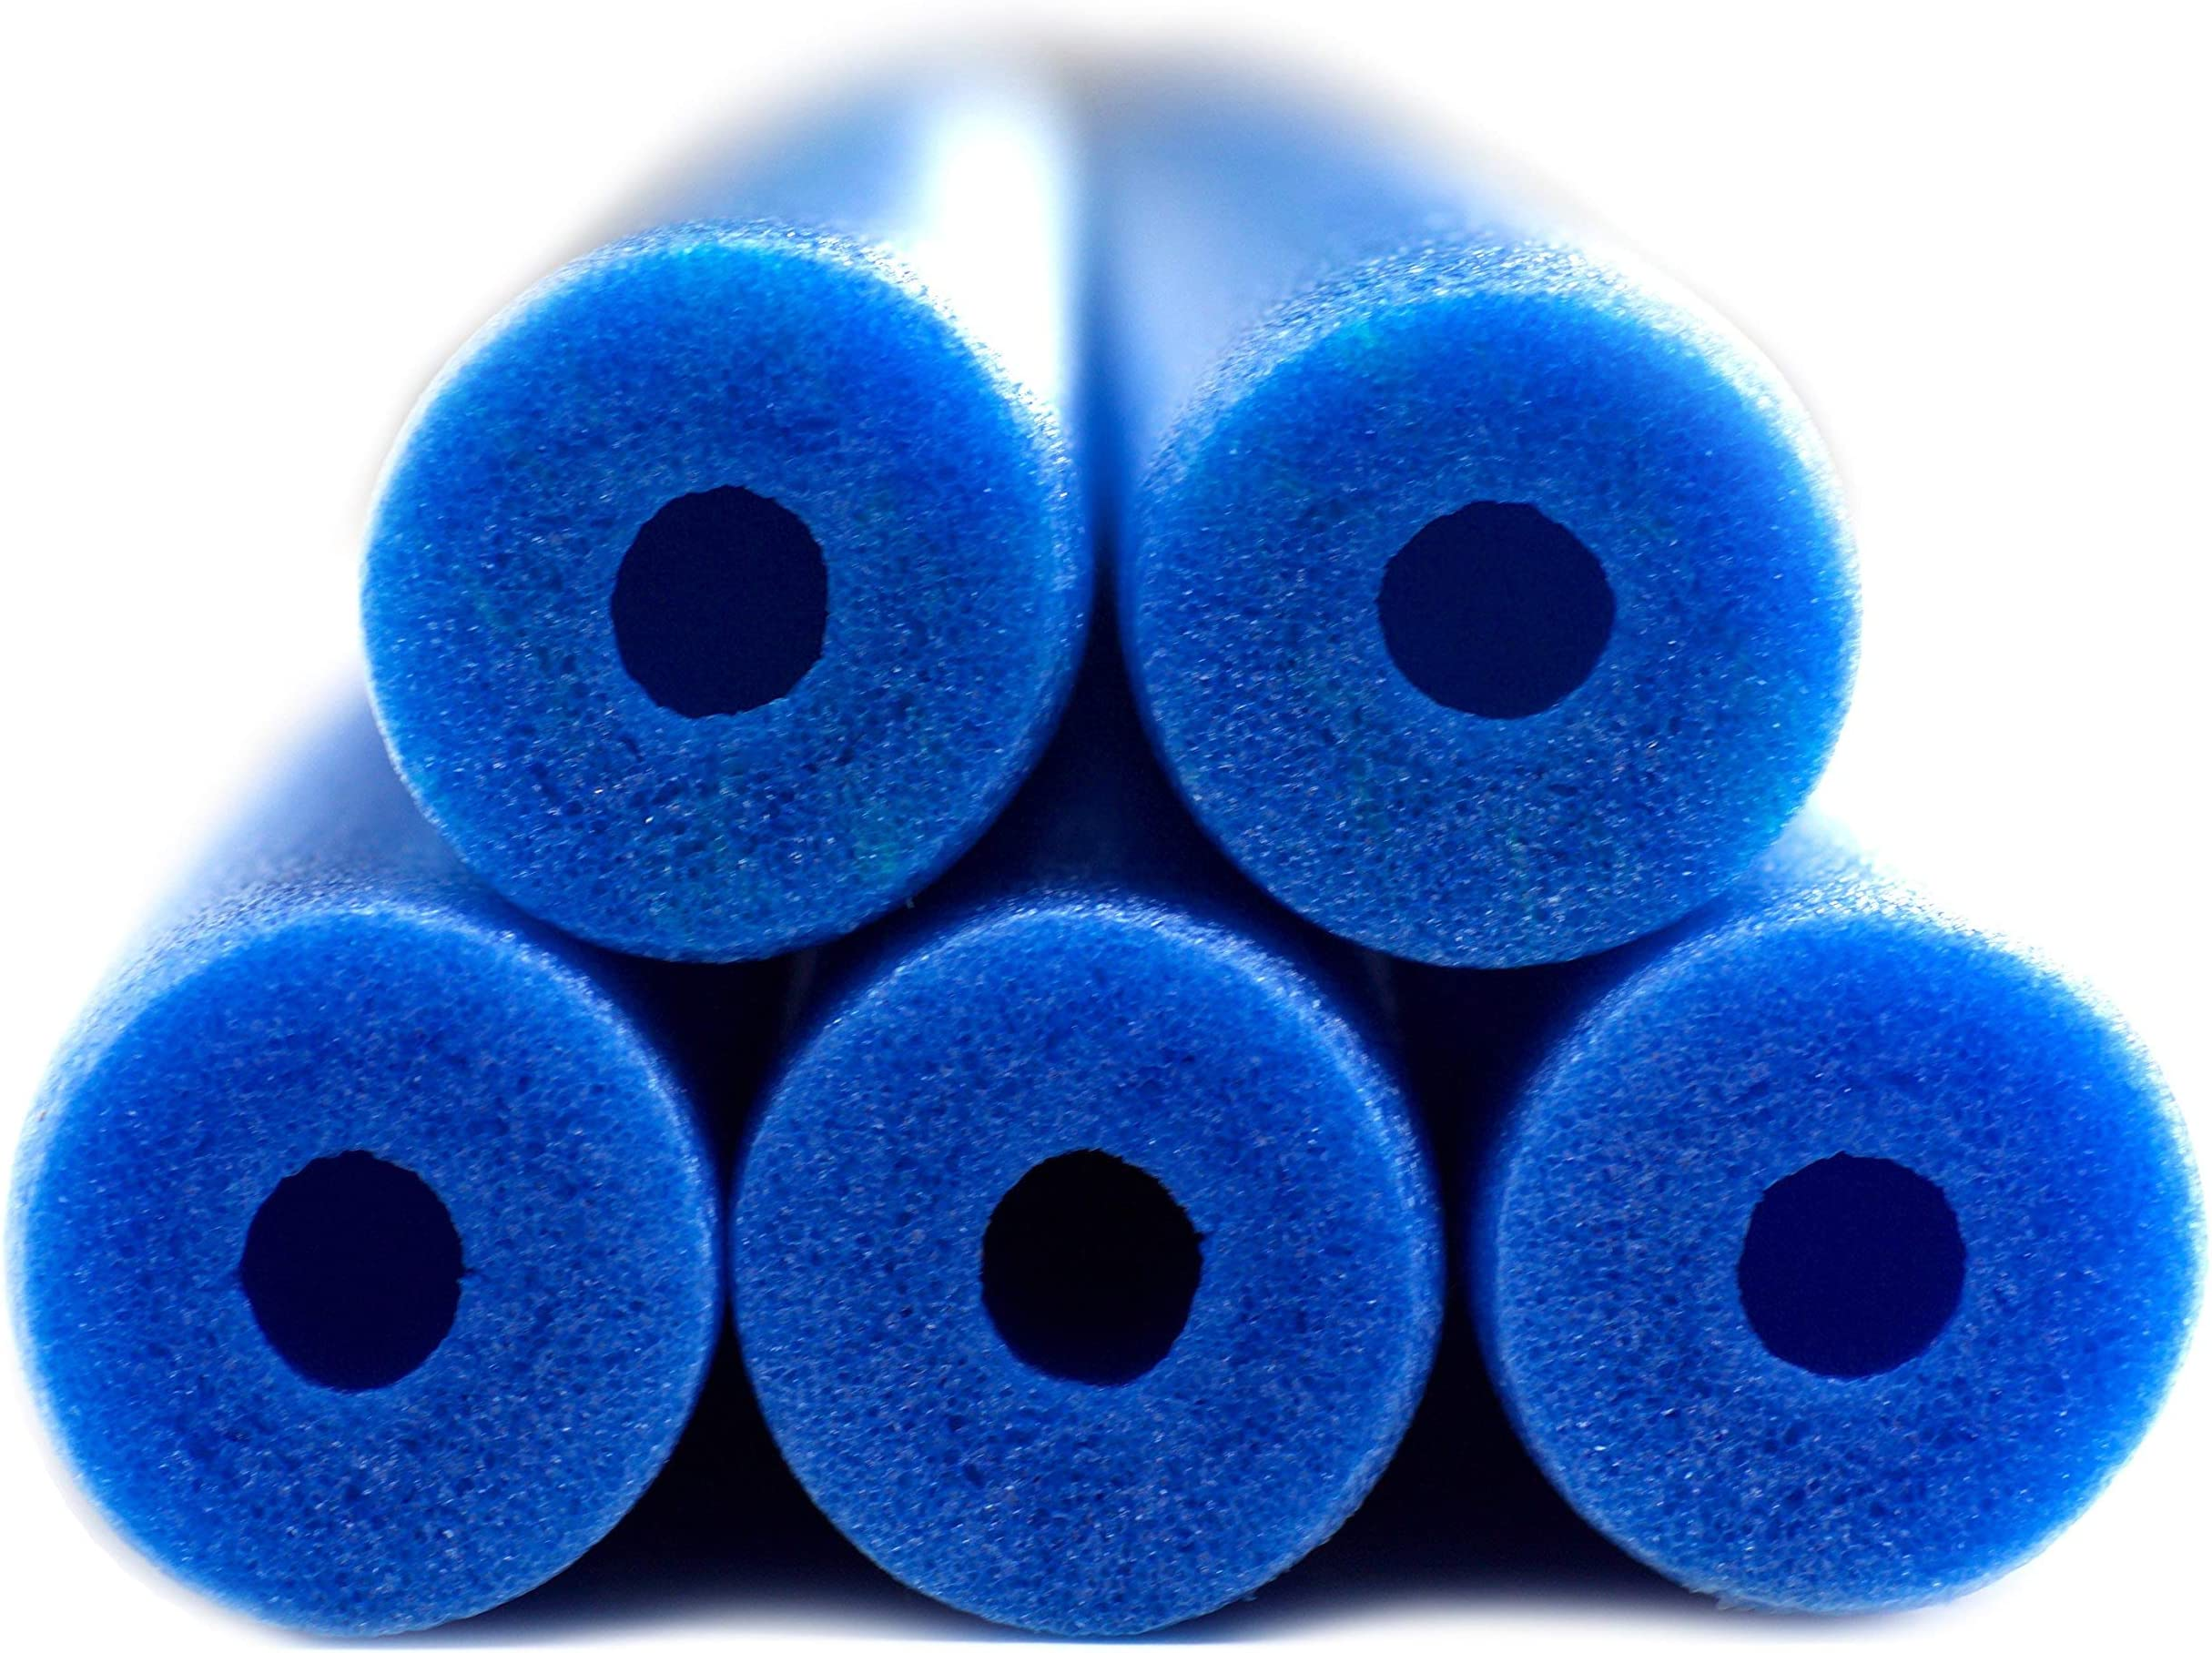 Fix Find - Pool Noodles - 5 Pack of 52 Inch Hollow Foam Pool Swim Noodles | Blue Foam Noodles